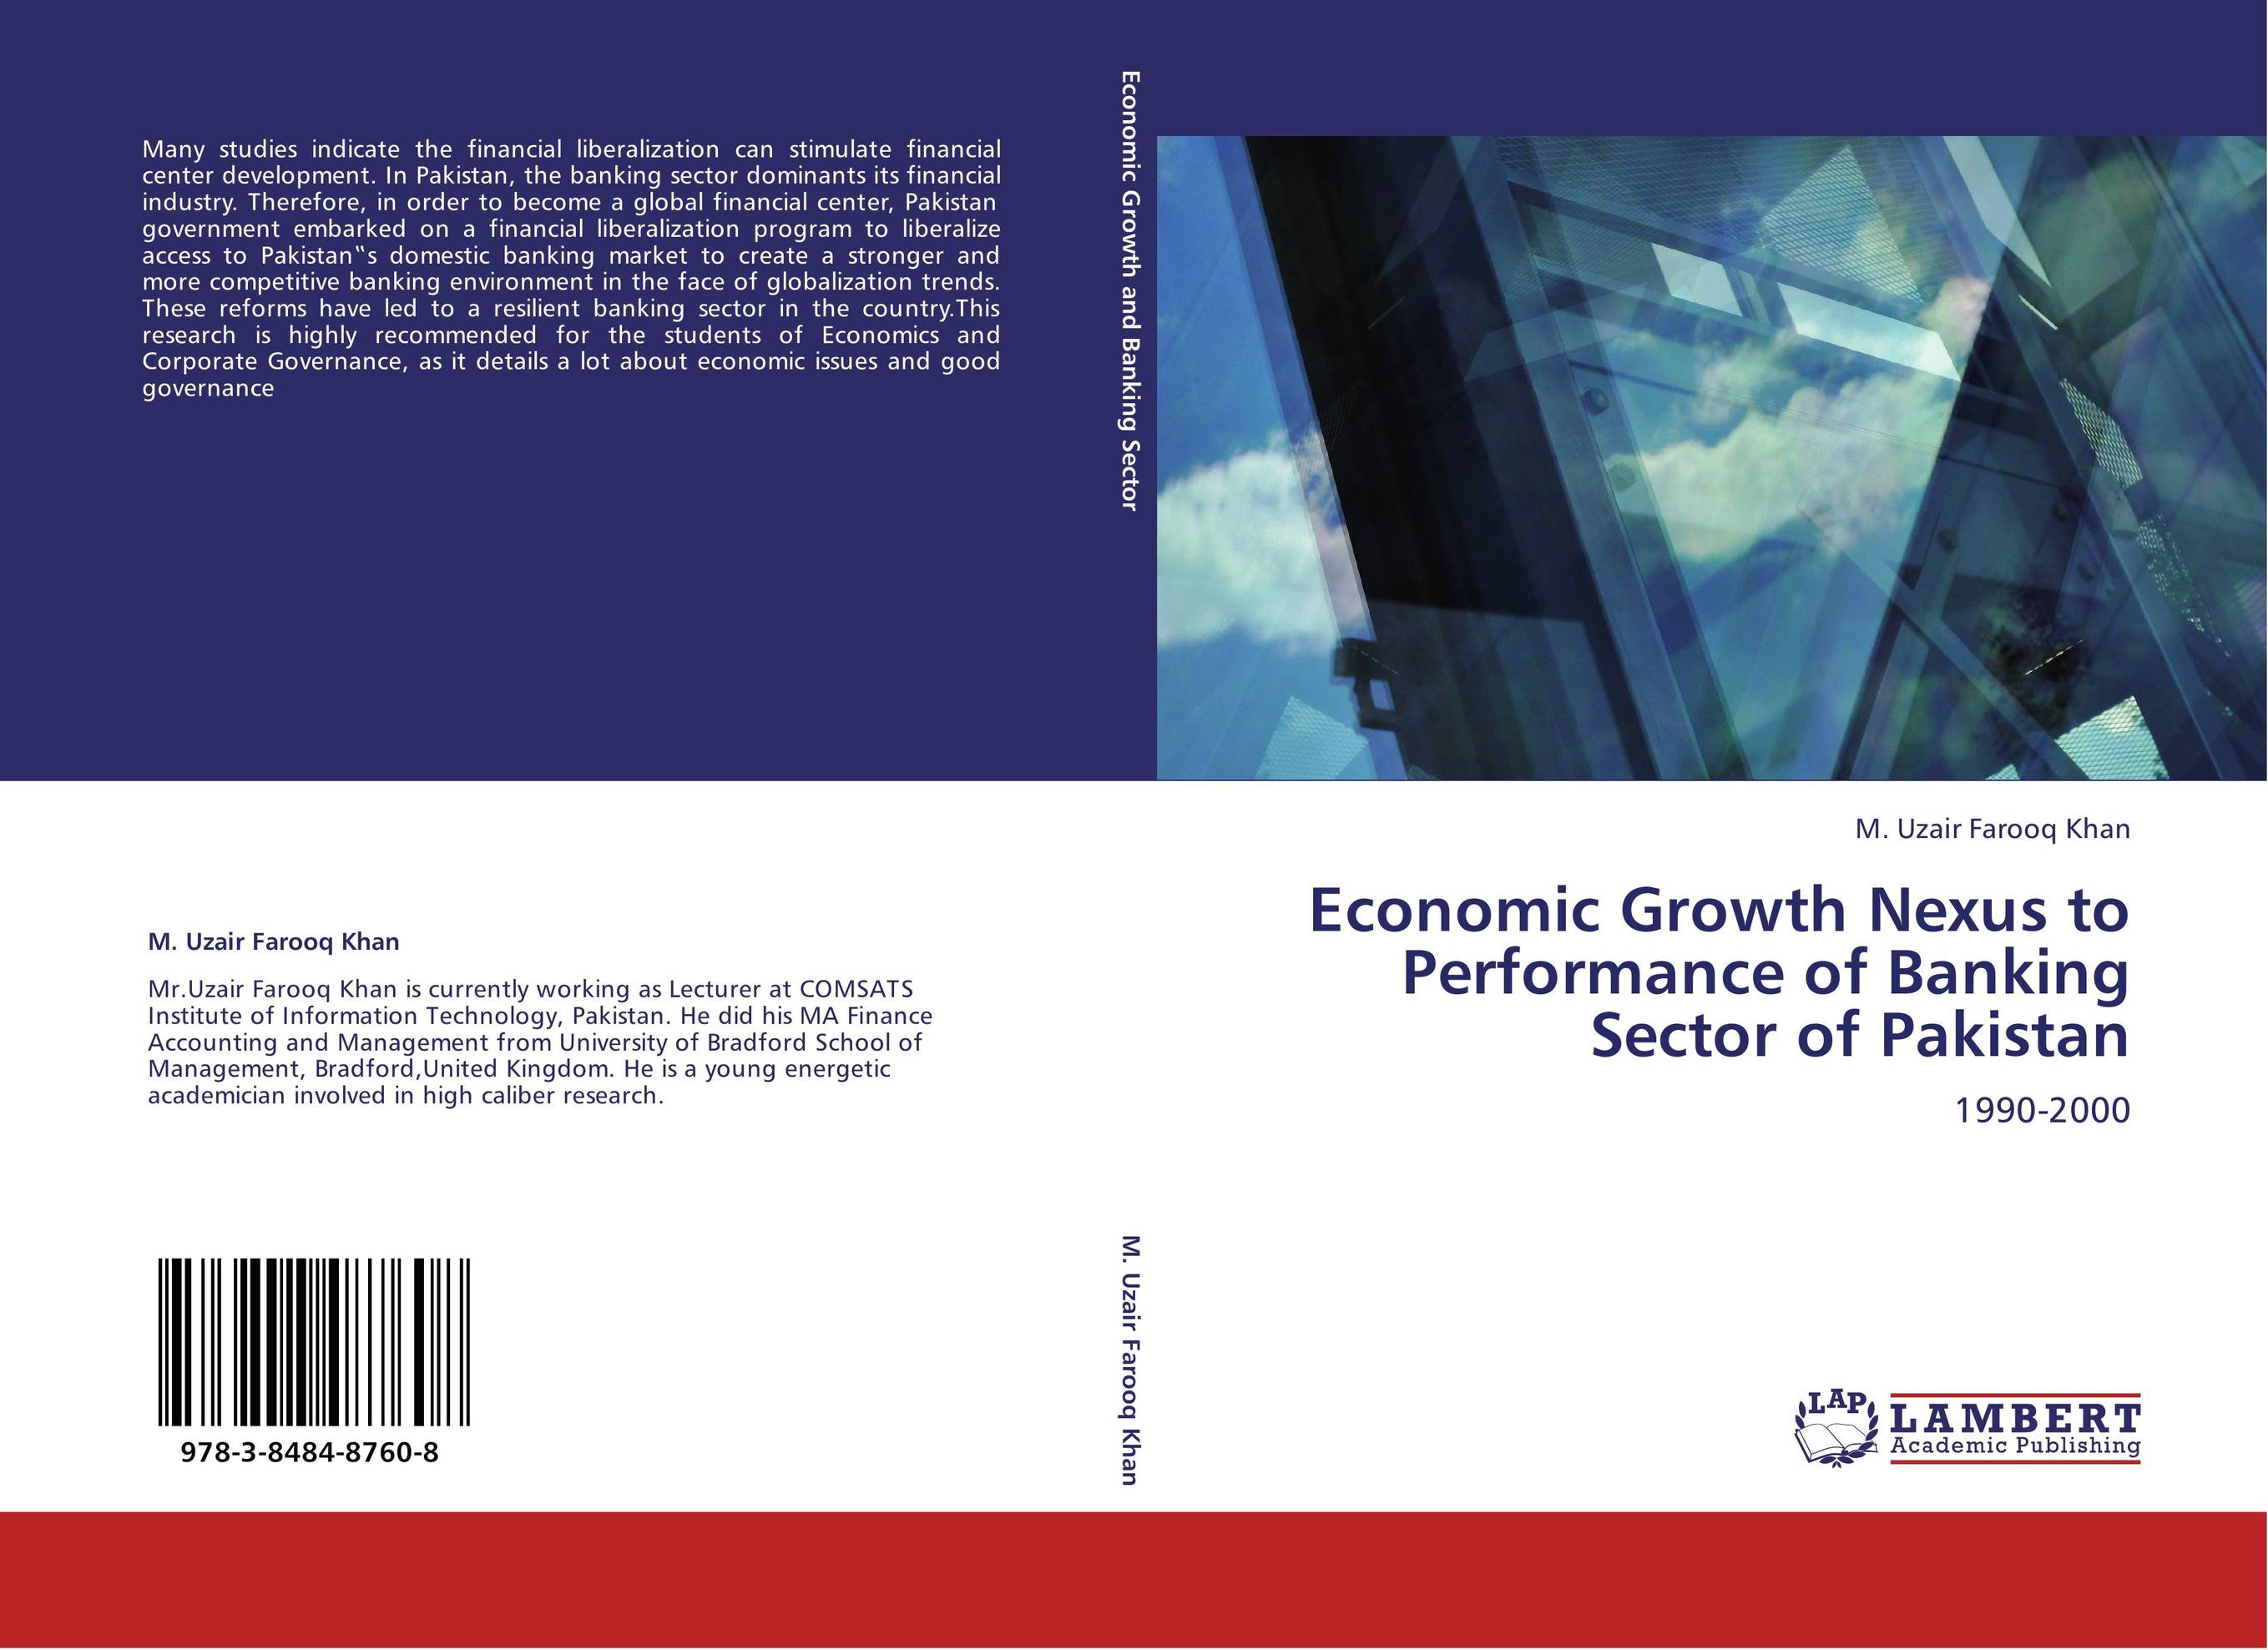 Economic Growth Nexus to Performance of Banking Sector of Pakistan impact of stock market performance indices on economic growth